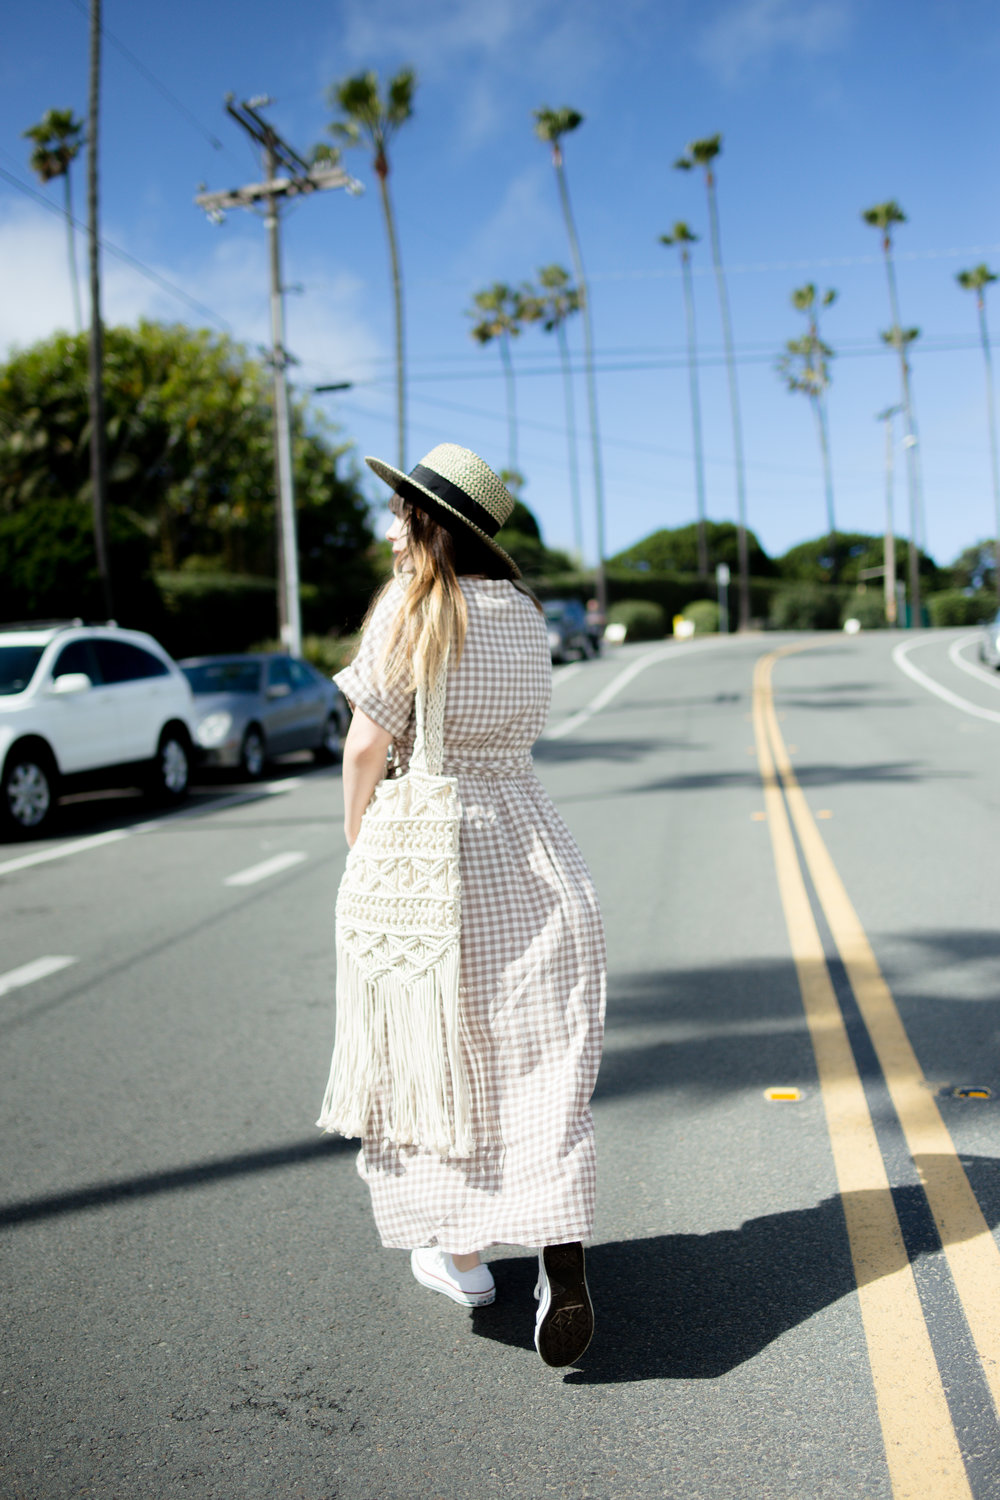 Streetstyle of Girl Wearing UO Gabrielle Linen Midi Wrap Dress and white converse chuck Taylors